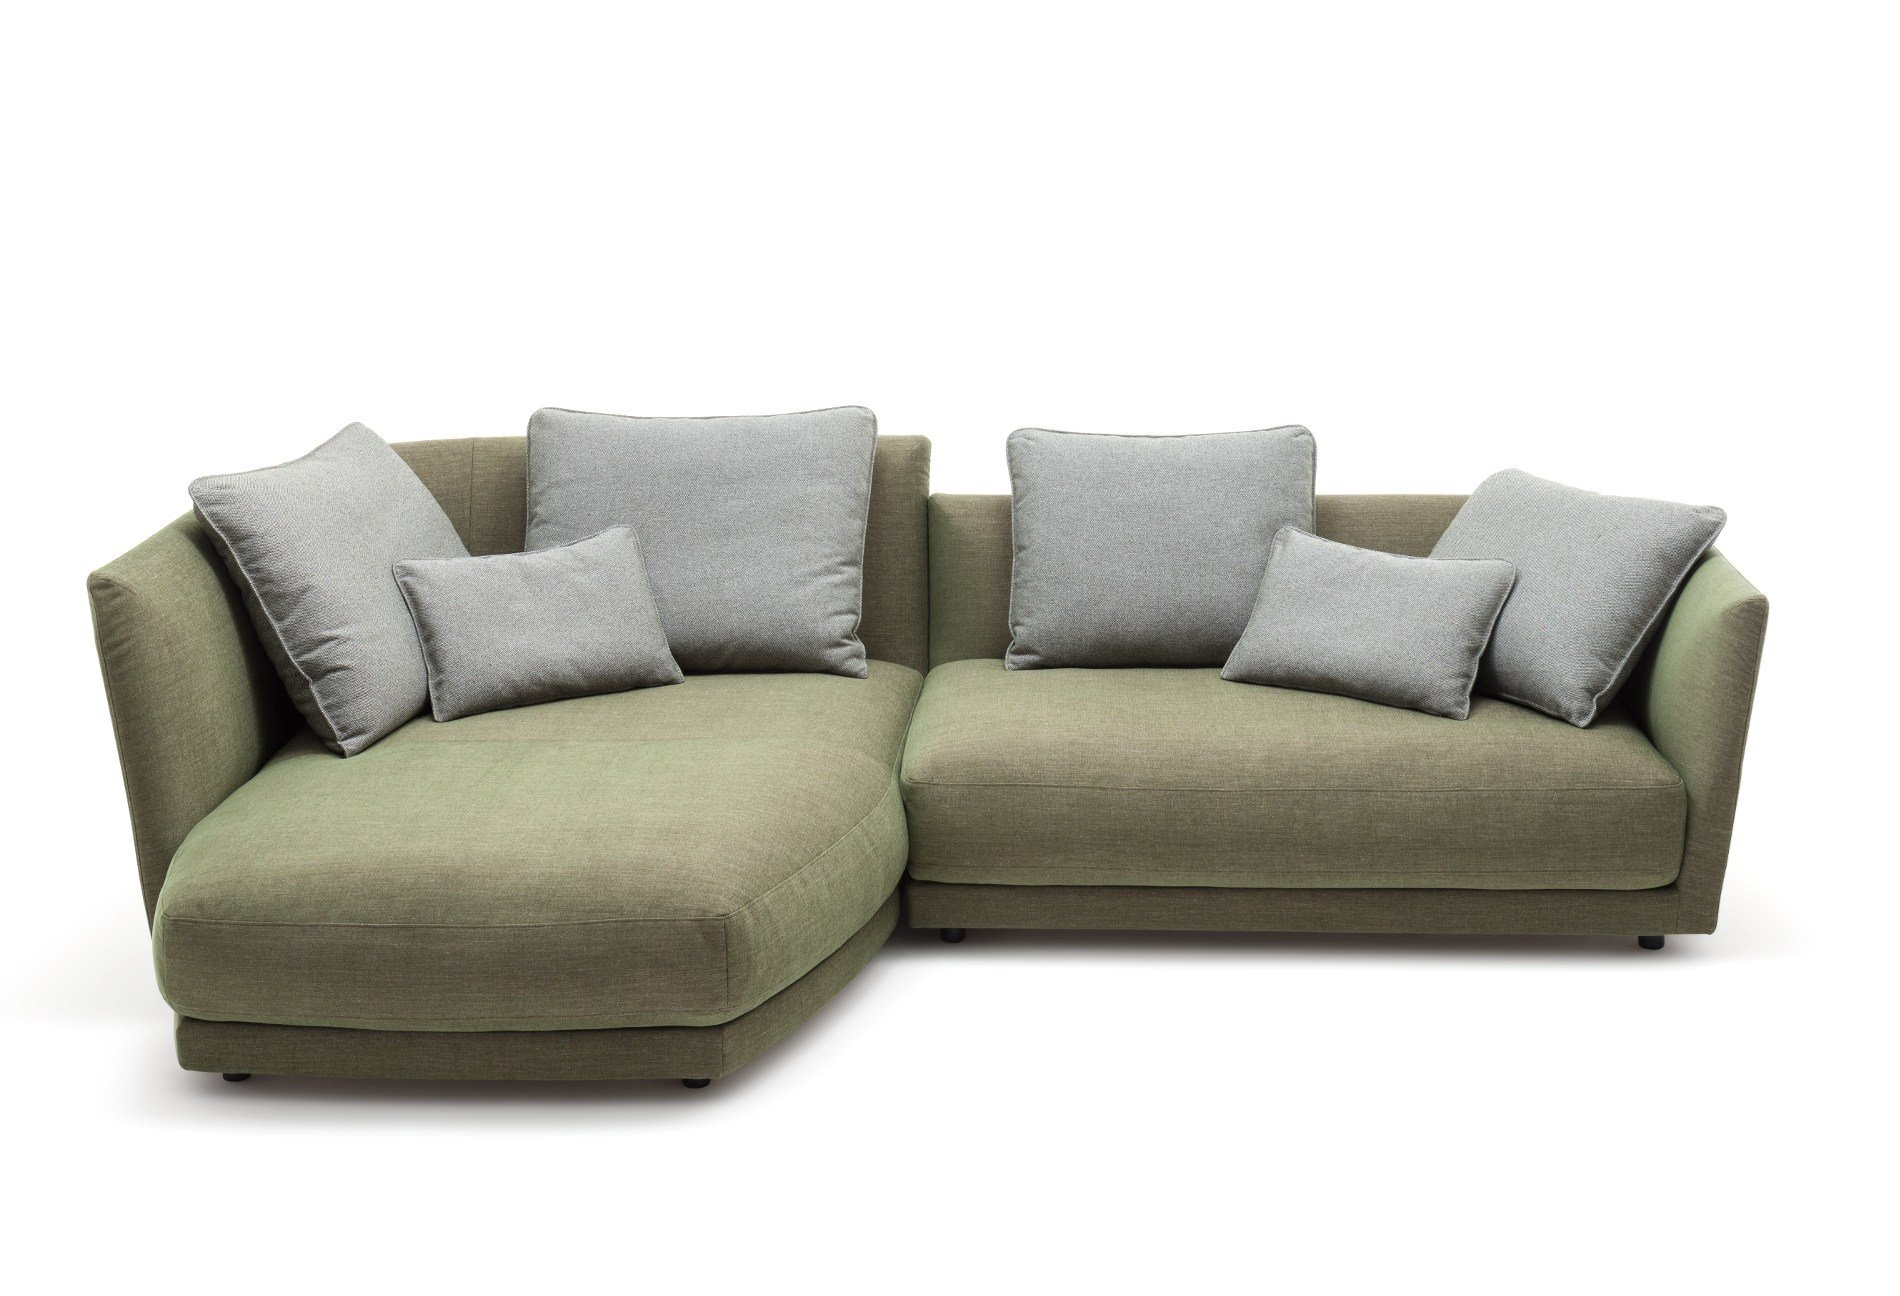 Tondo modular sofa by rolf benz design sebastian labs for Rolf benz tondo